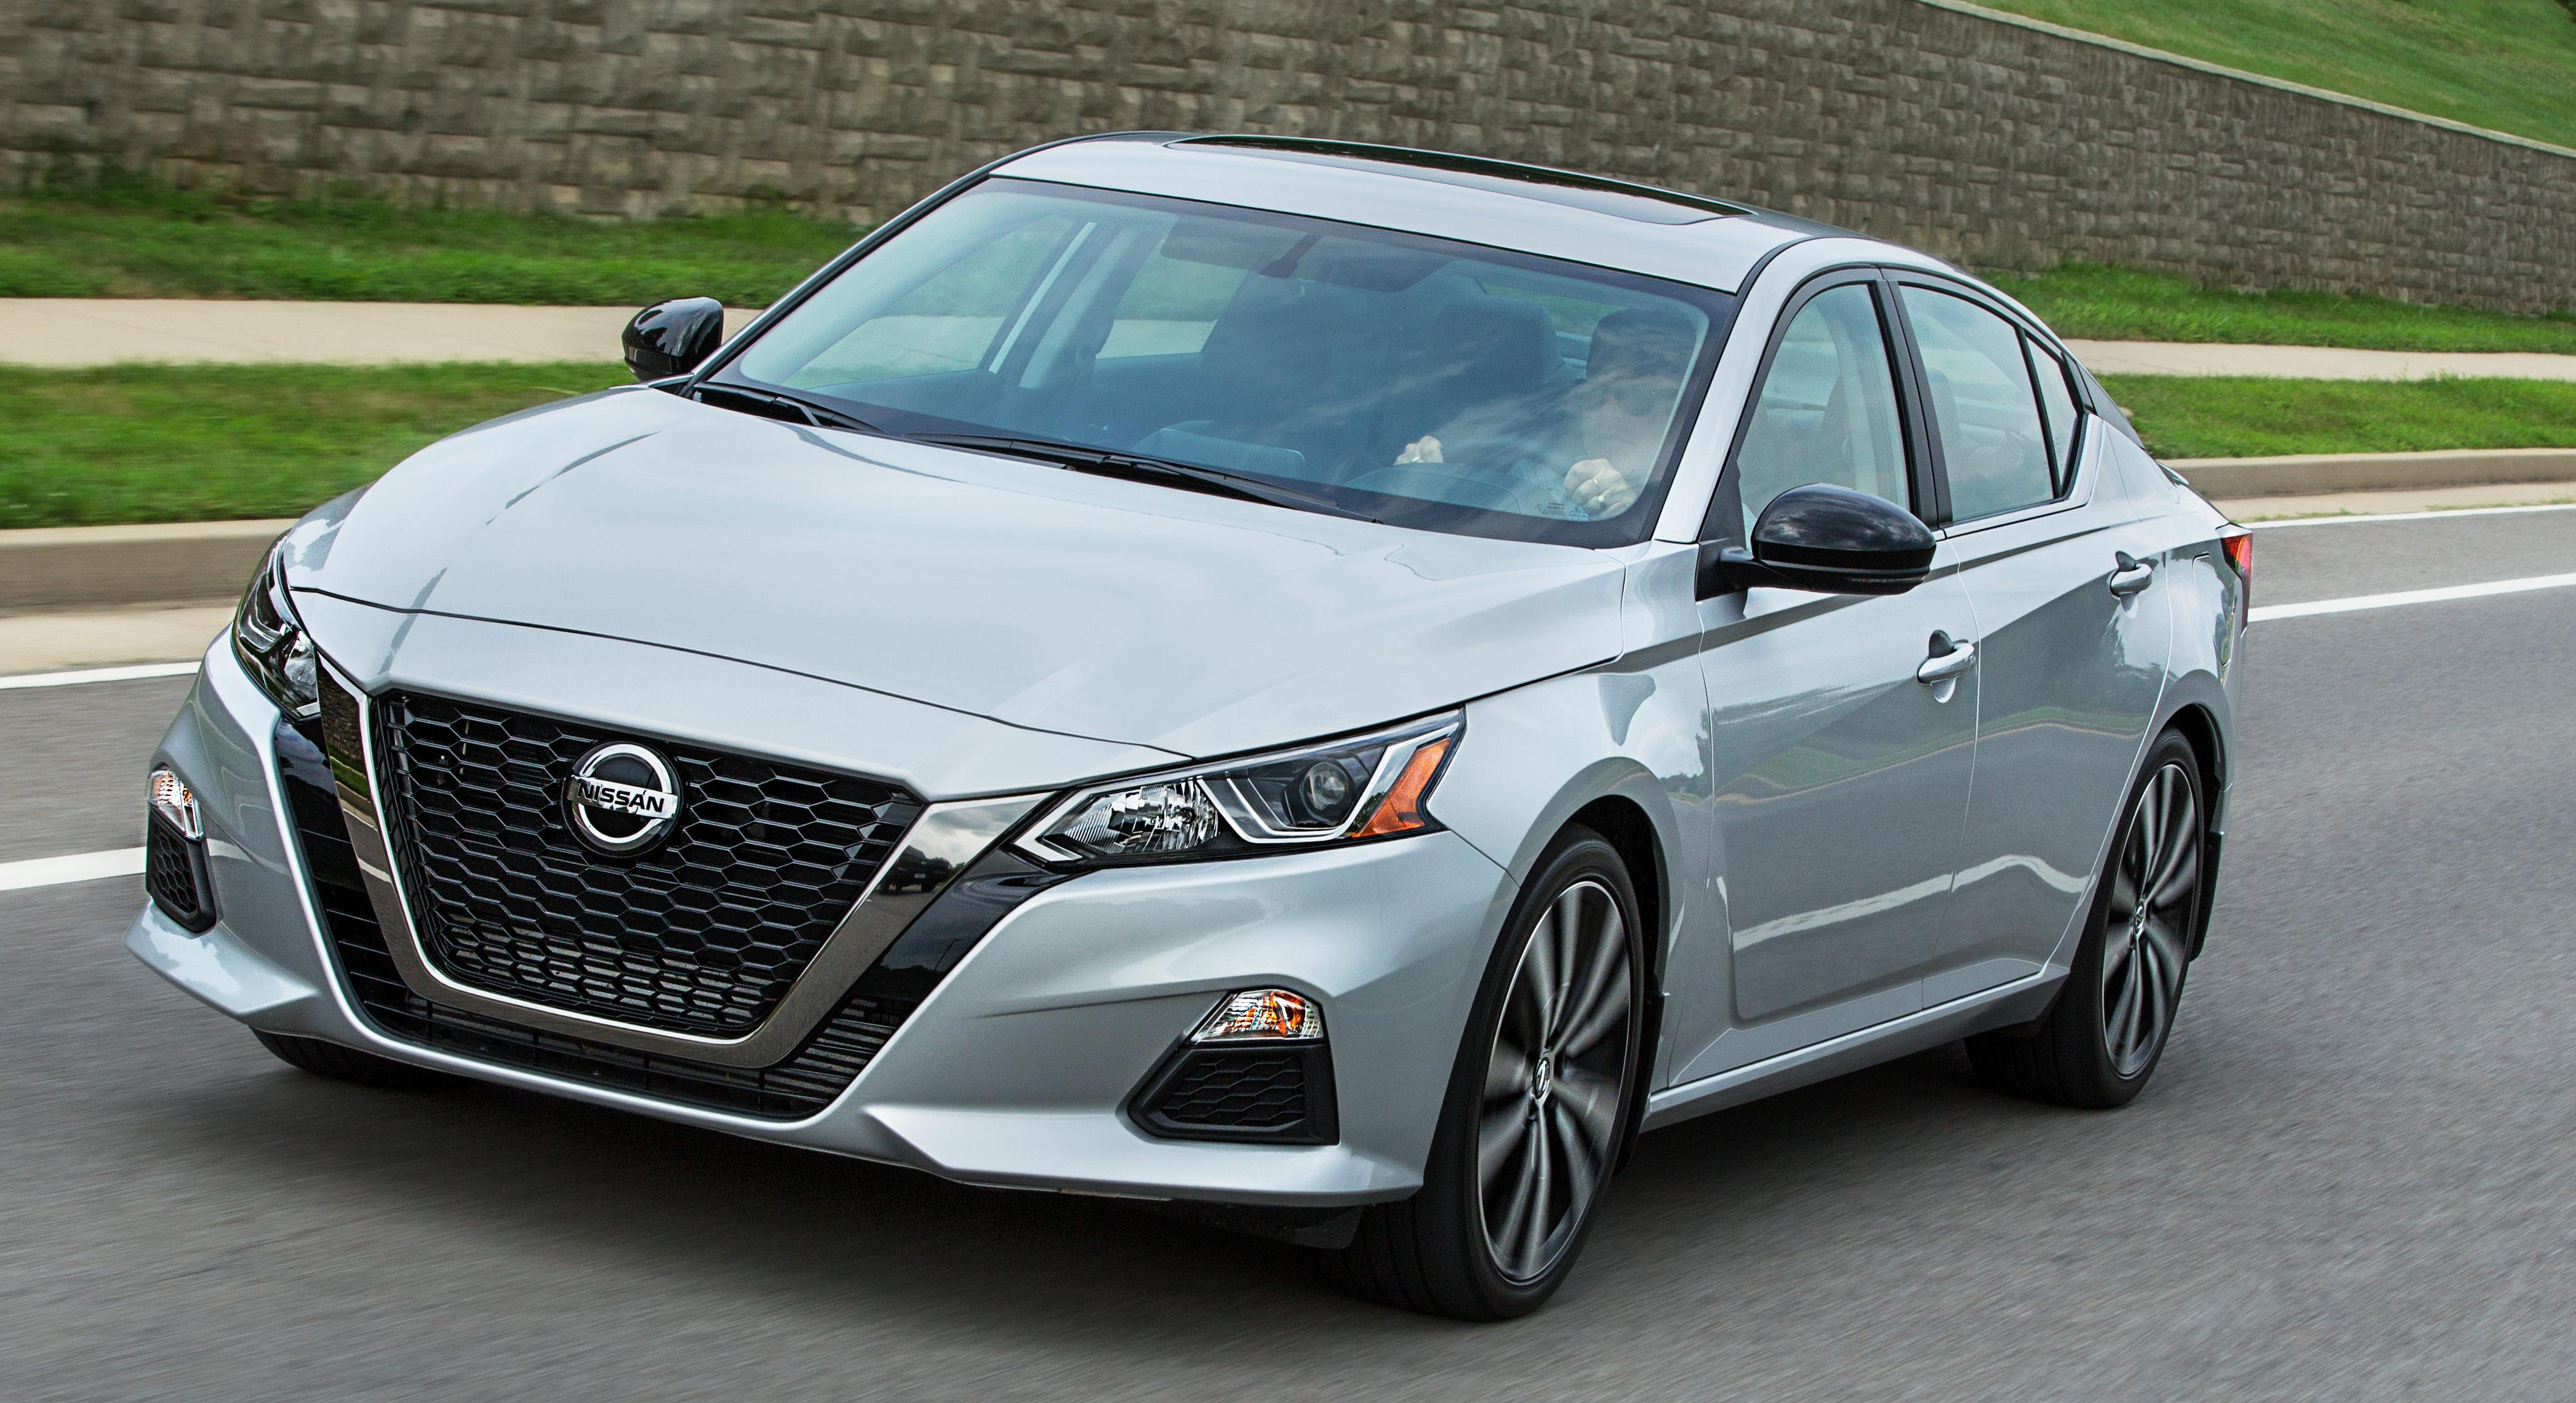 Nissan began offering all-wheel drive on its latest Altima sedan in the U.S. market in November. Since then, the company says more than 20% of buyers in the U.S. have opted for the $1,350 package.